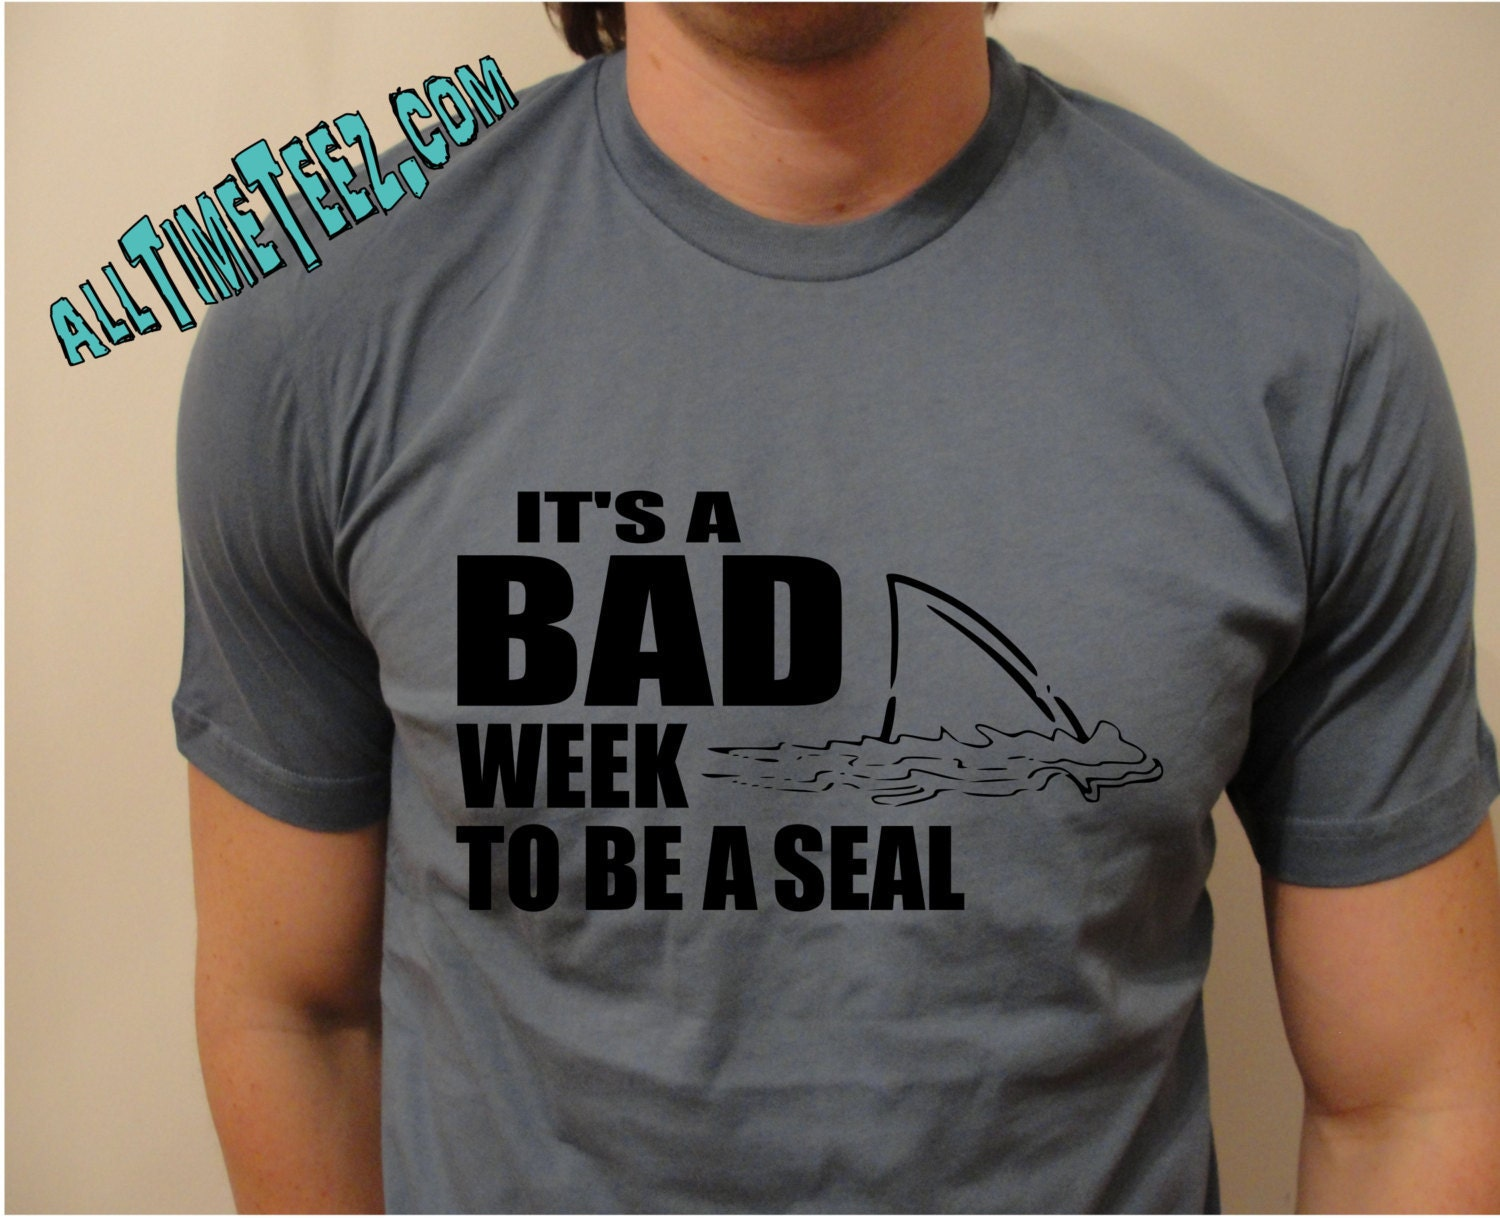 3a3184361c Shark Week - It's A Bad Week To Be A Seal - Awesome Shark T Shirt - Jaws T  Shrit - Unisex Fit, perfect for everyone! - Ships from USA